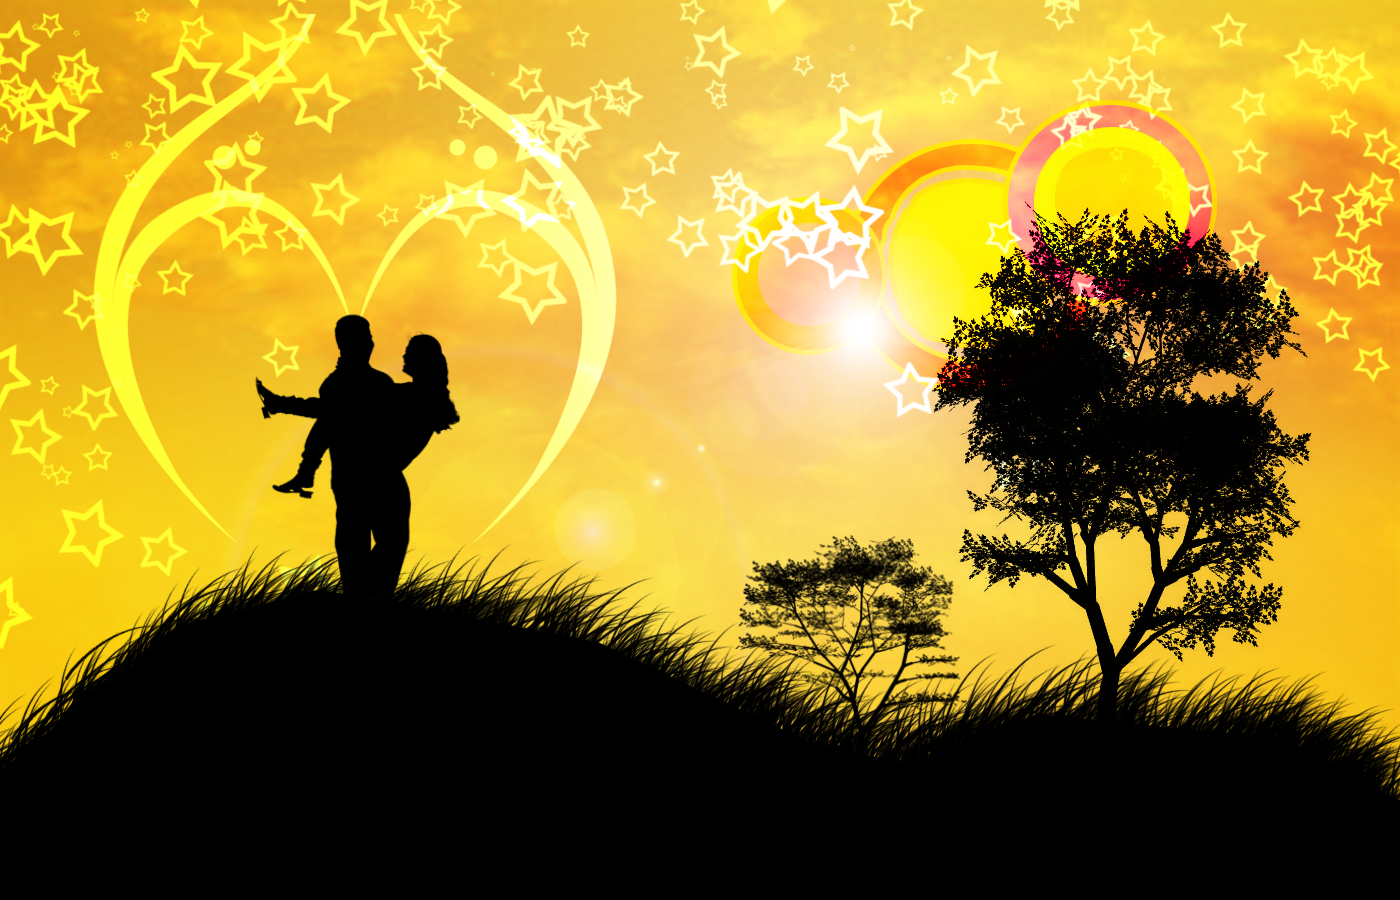 Lovely Love Design Wallpaper : free wallpicz: Wallpaper Deviantart Abstract